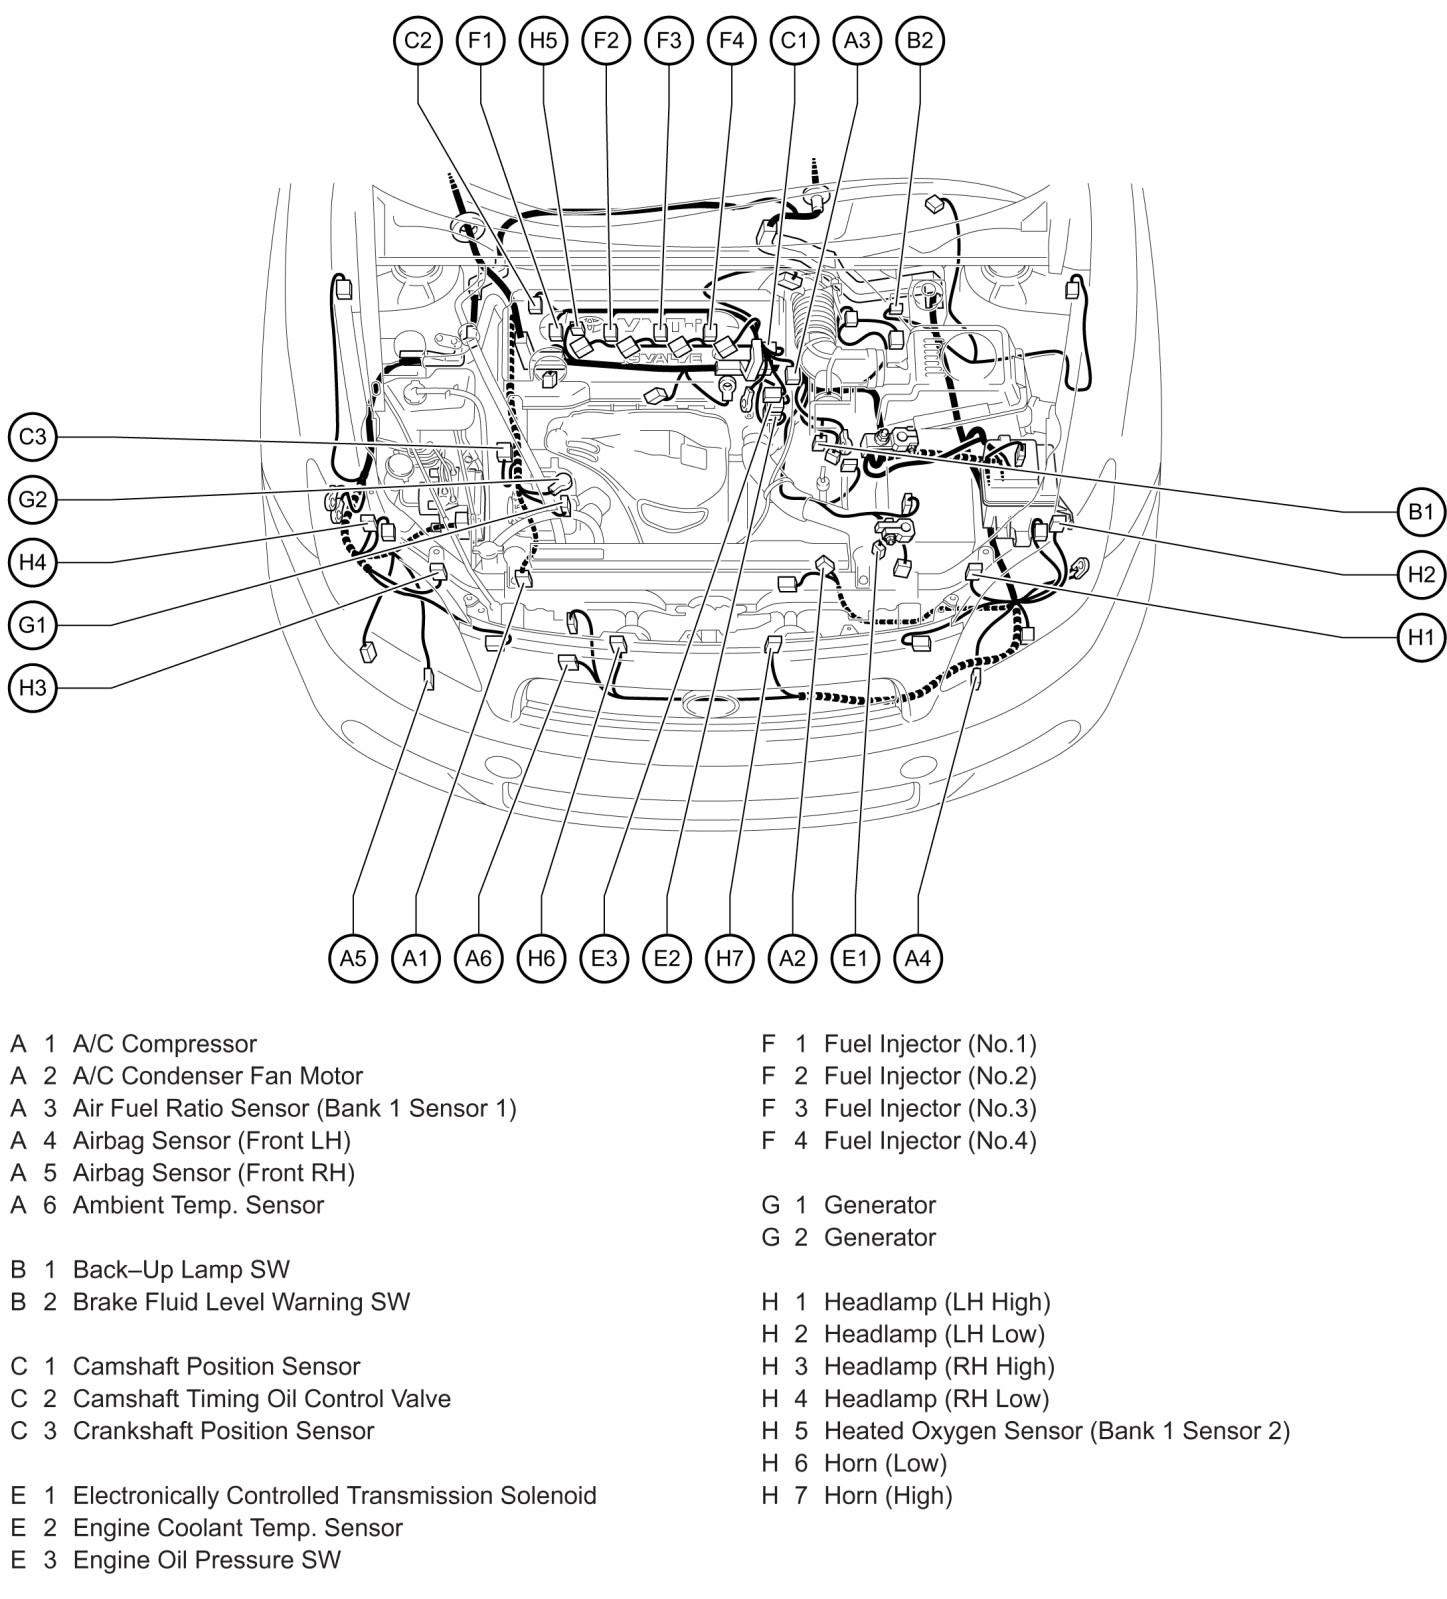 Cadillac Srx Engine Diagram Free Download Wiring Schematic 2005 Sts besides 2006 Chevy Impala Wiring Diagram And 0996b43f807d9255 Gif With as well 2010 Prius Fuse Box Location 2007 Scion Tc also 2007 Toyota Ta A Engine Parts Diagram besides 6391y 07 Kia Spectra Ex Blow Dome Lights Power Locks Air Conditioner. on toyota scion tc fuse diagram